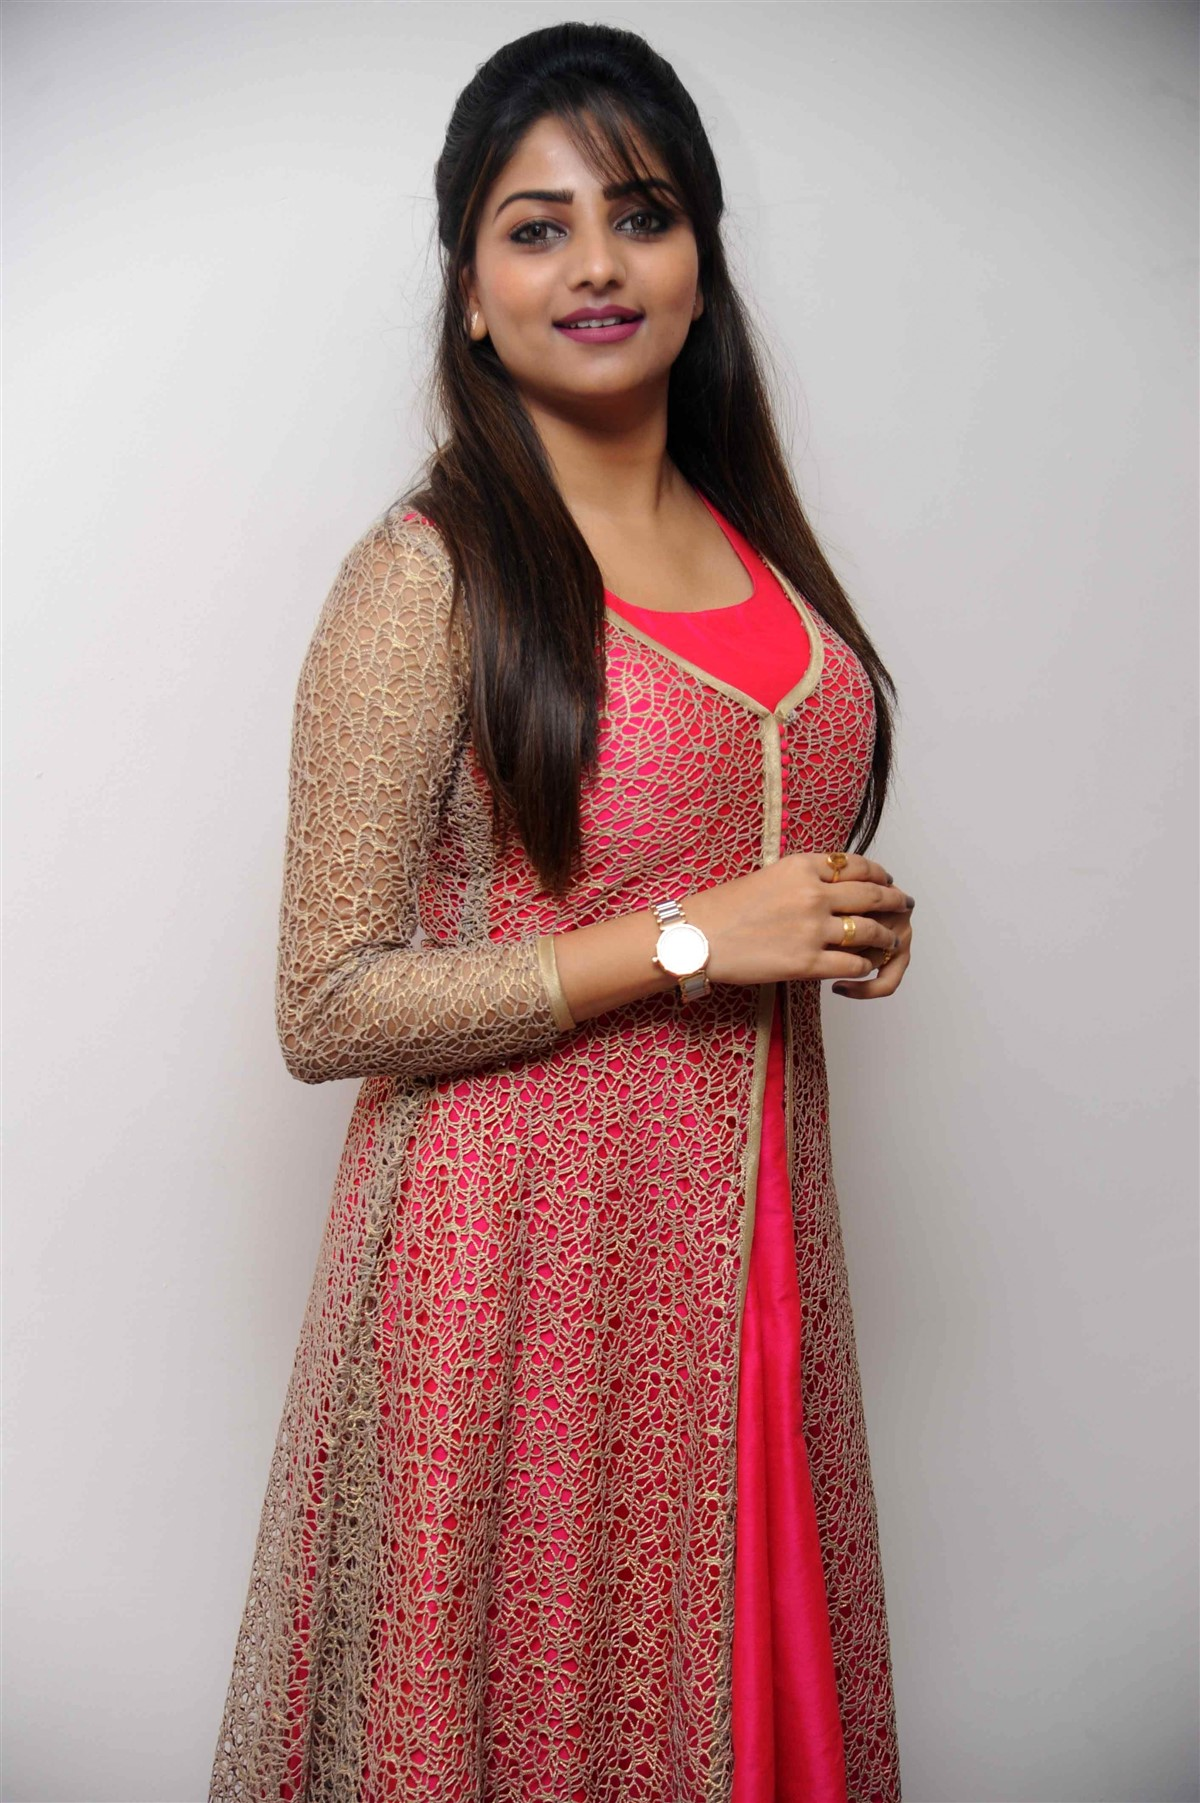 kannada-actress-rachita-ram-latest-photo-shoot-4